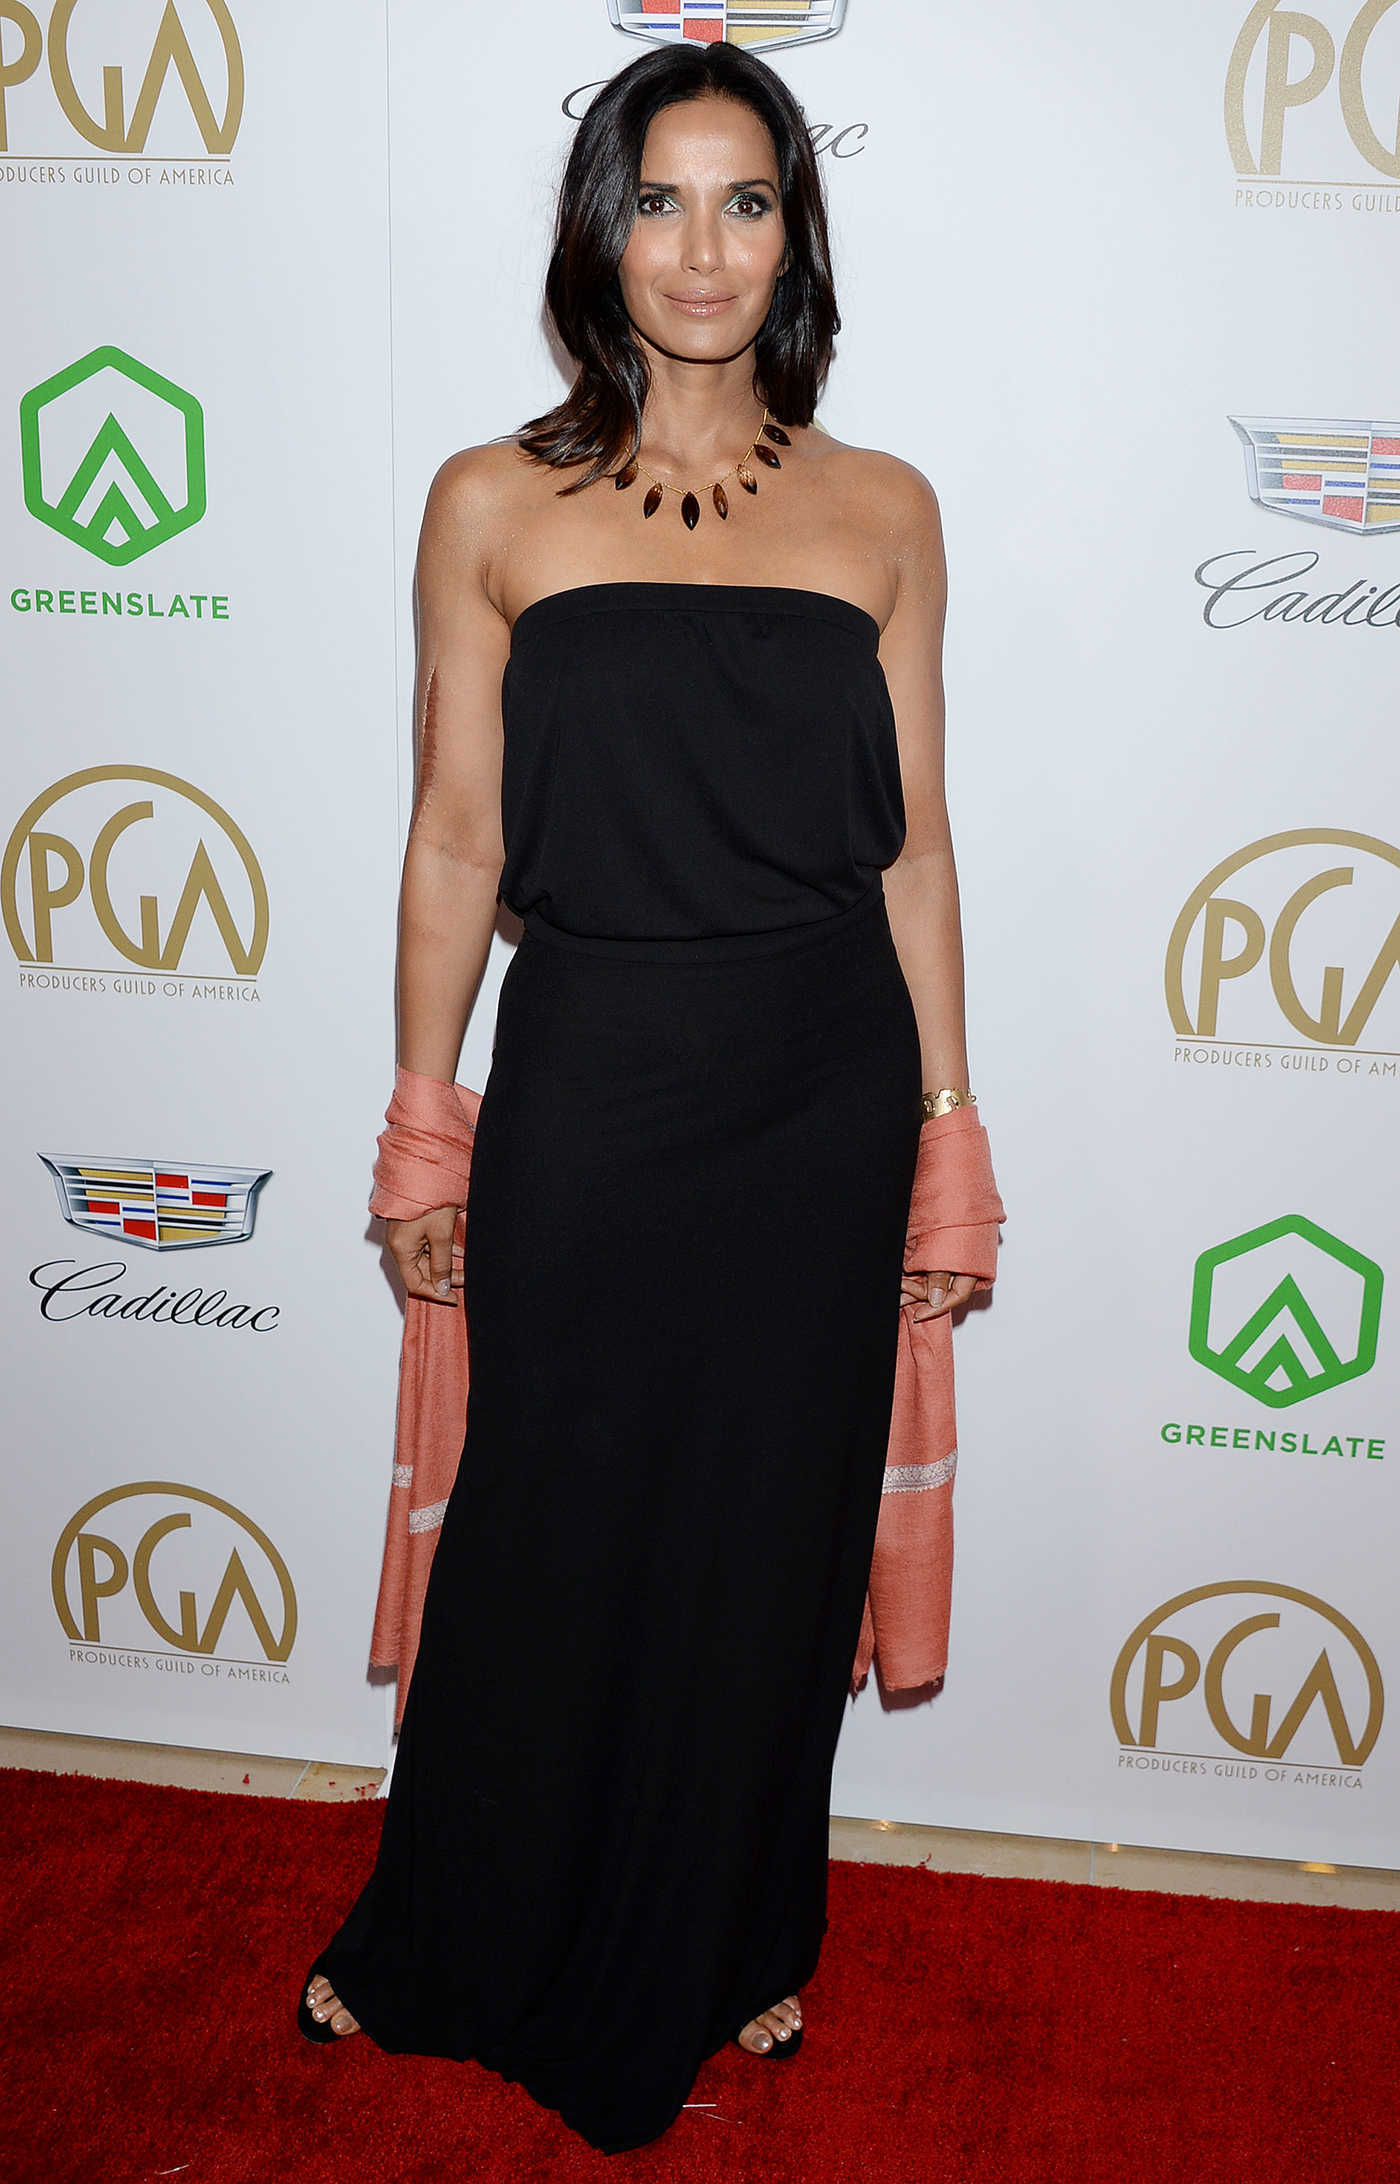 Padma Lakshmi Attends the 30th Annual Producers Guild Awards in Beverly Hills 01/19/2019